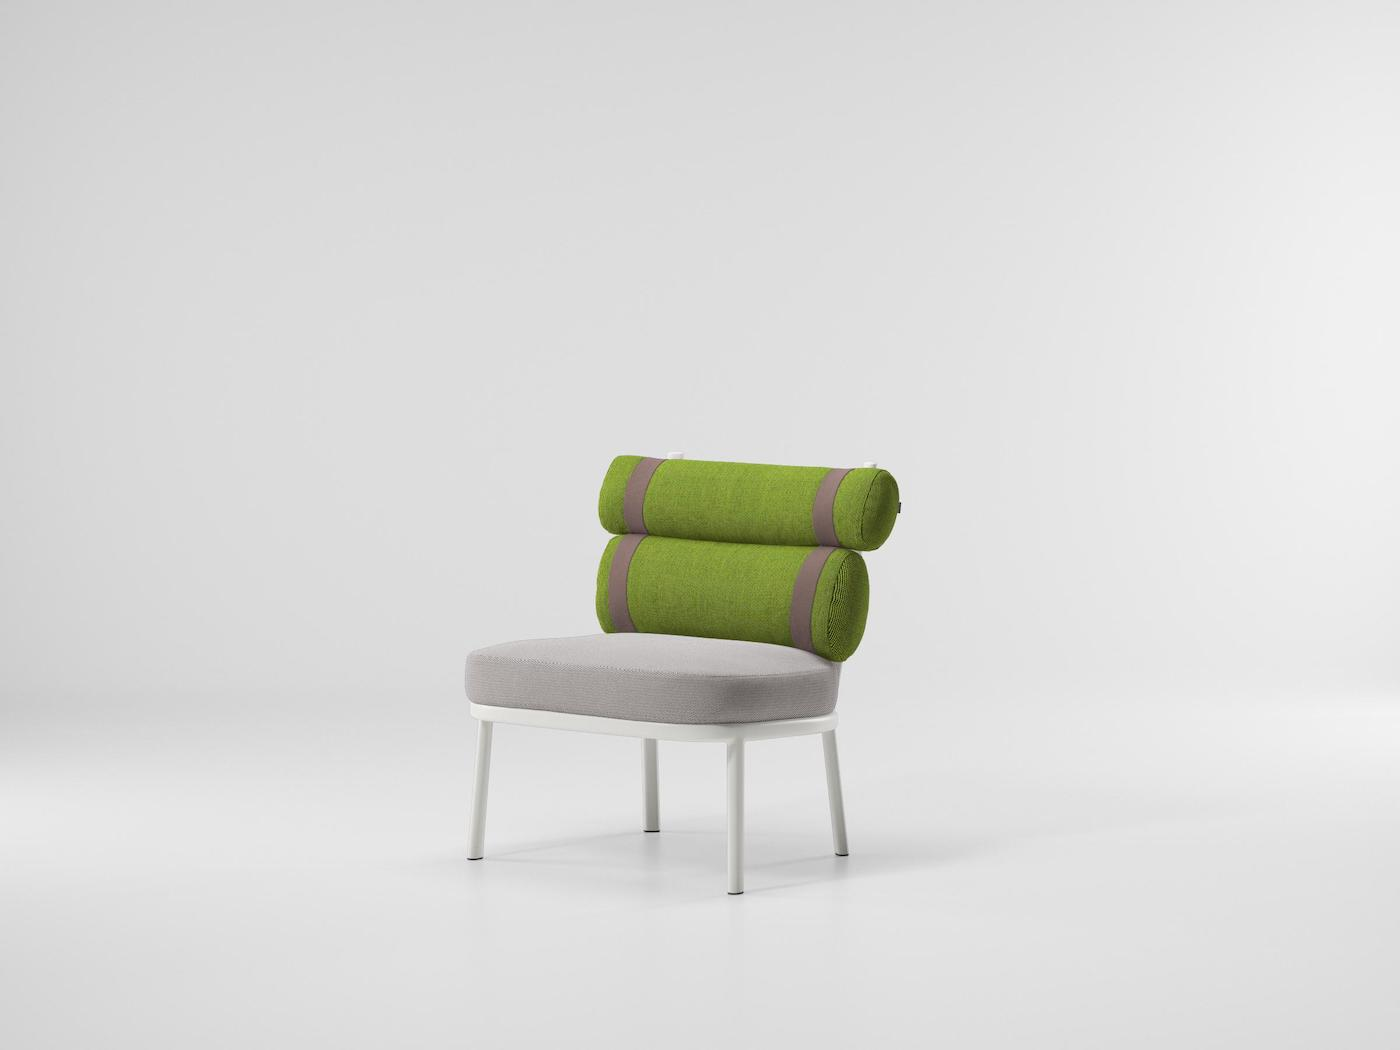 Roll easy outdoor chair by Patricia Urquiola for Kettal